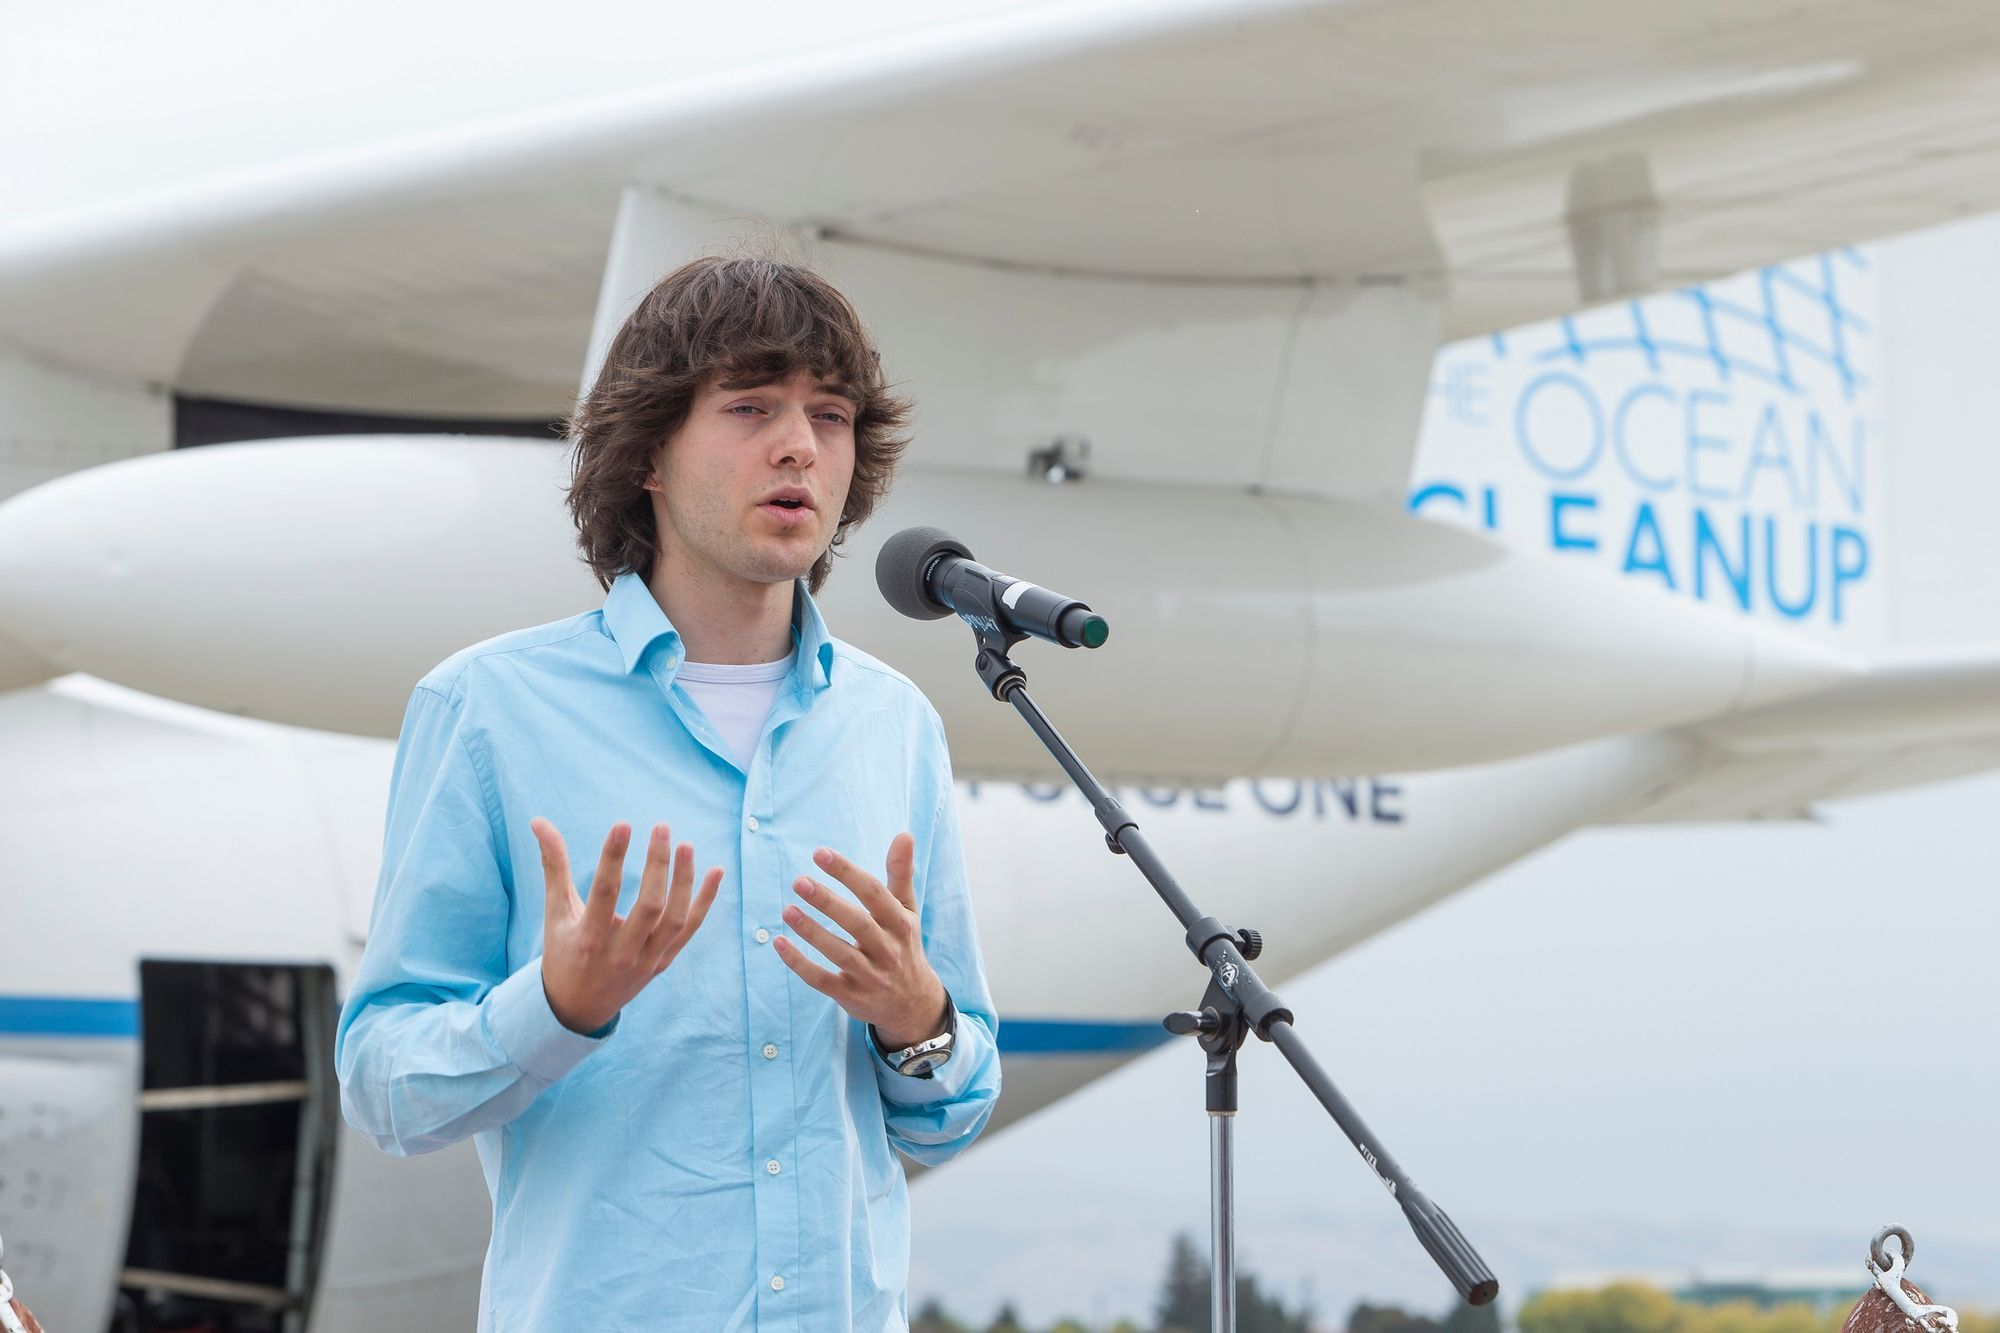 Boyan Slat/The Ocean Cleanup